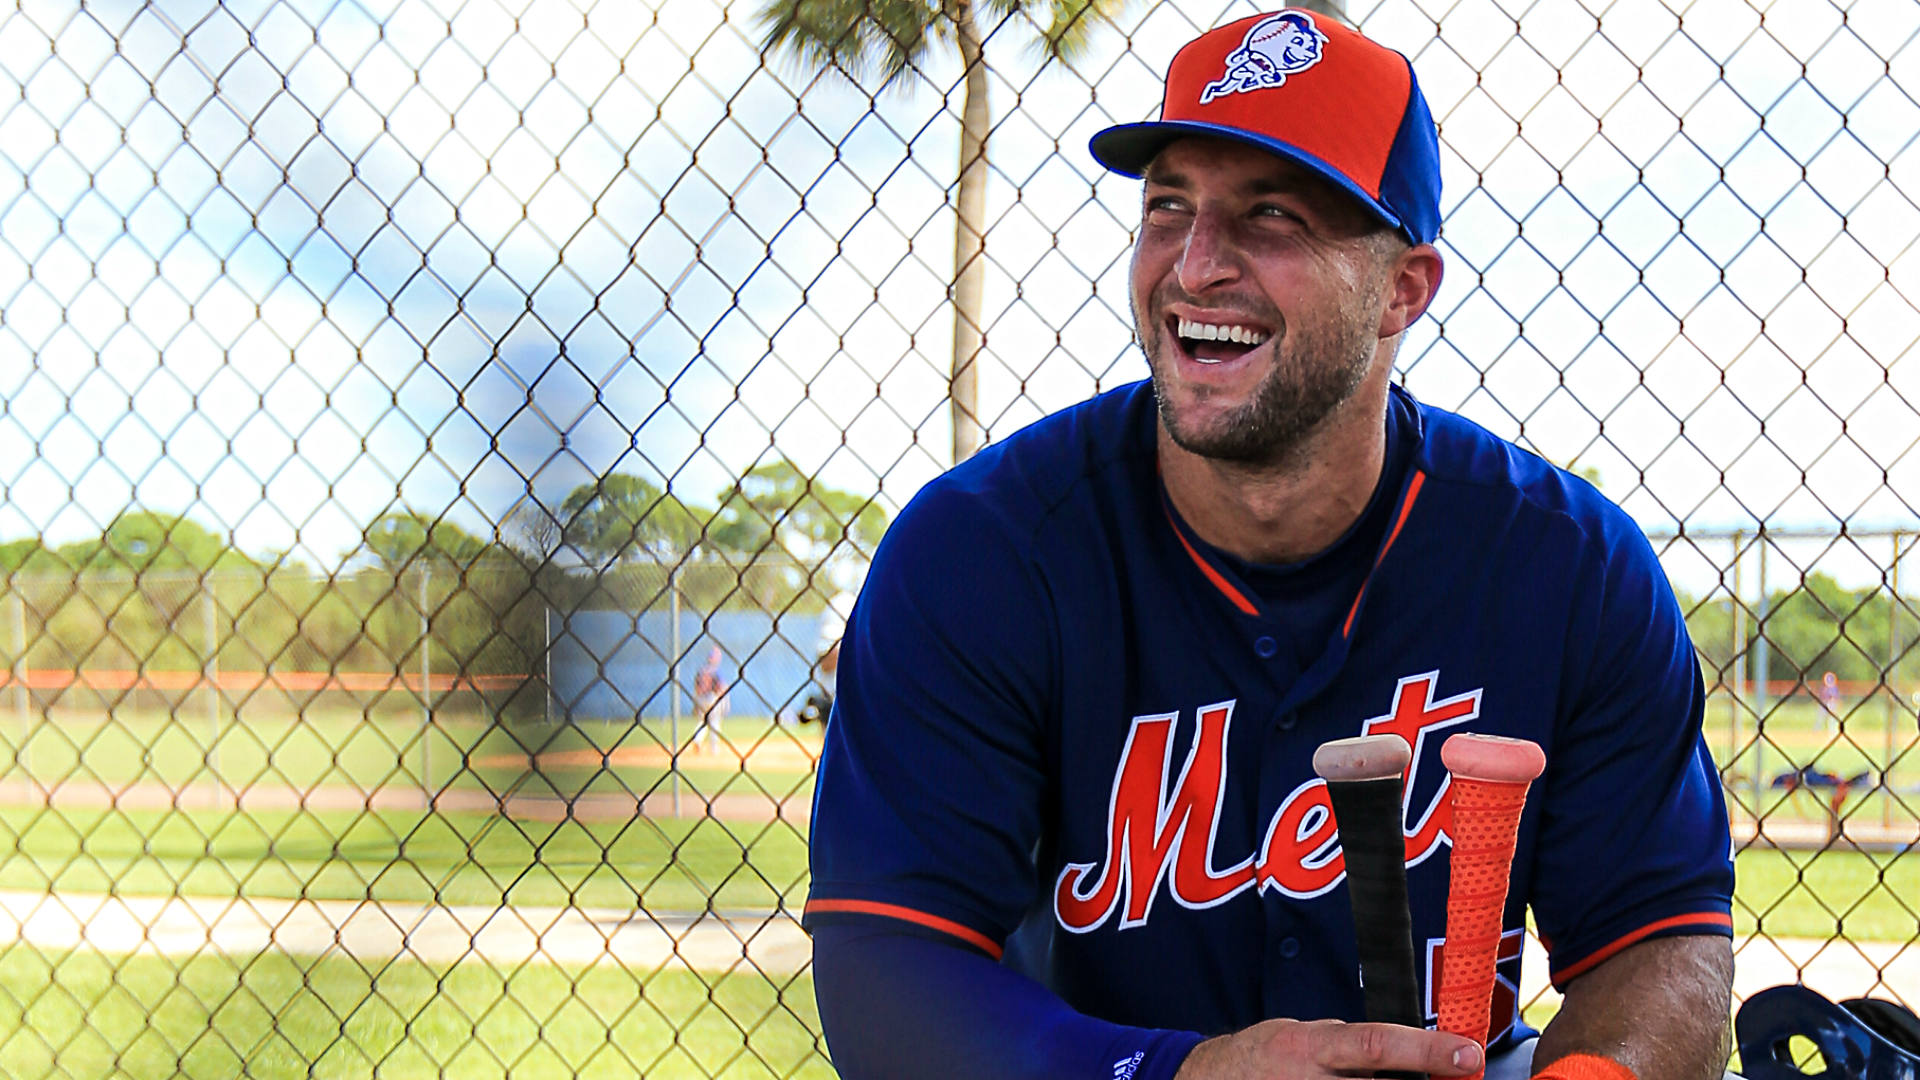 The Mets threw away a spring training roster spot when they invited Tim Tebow to camp